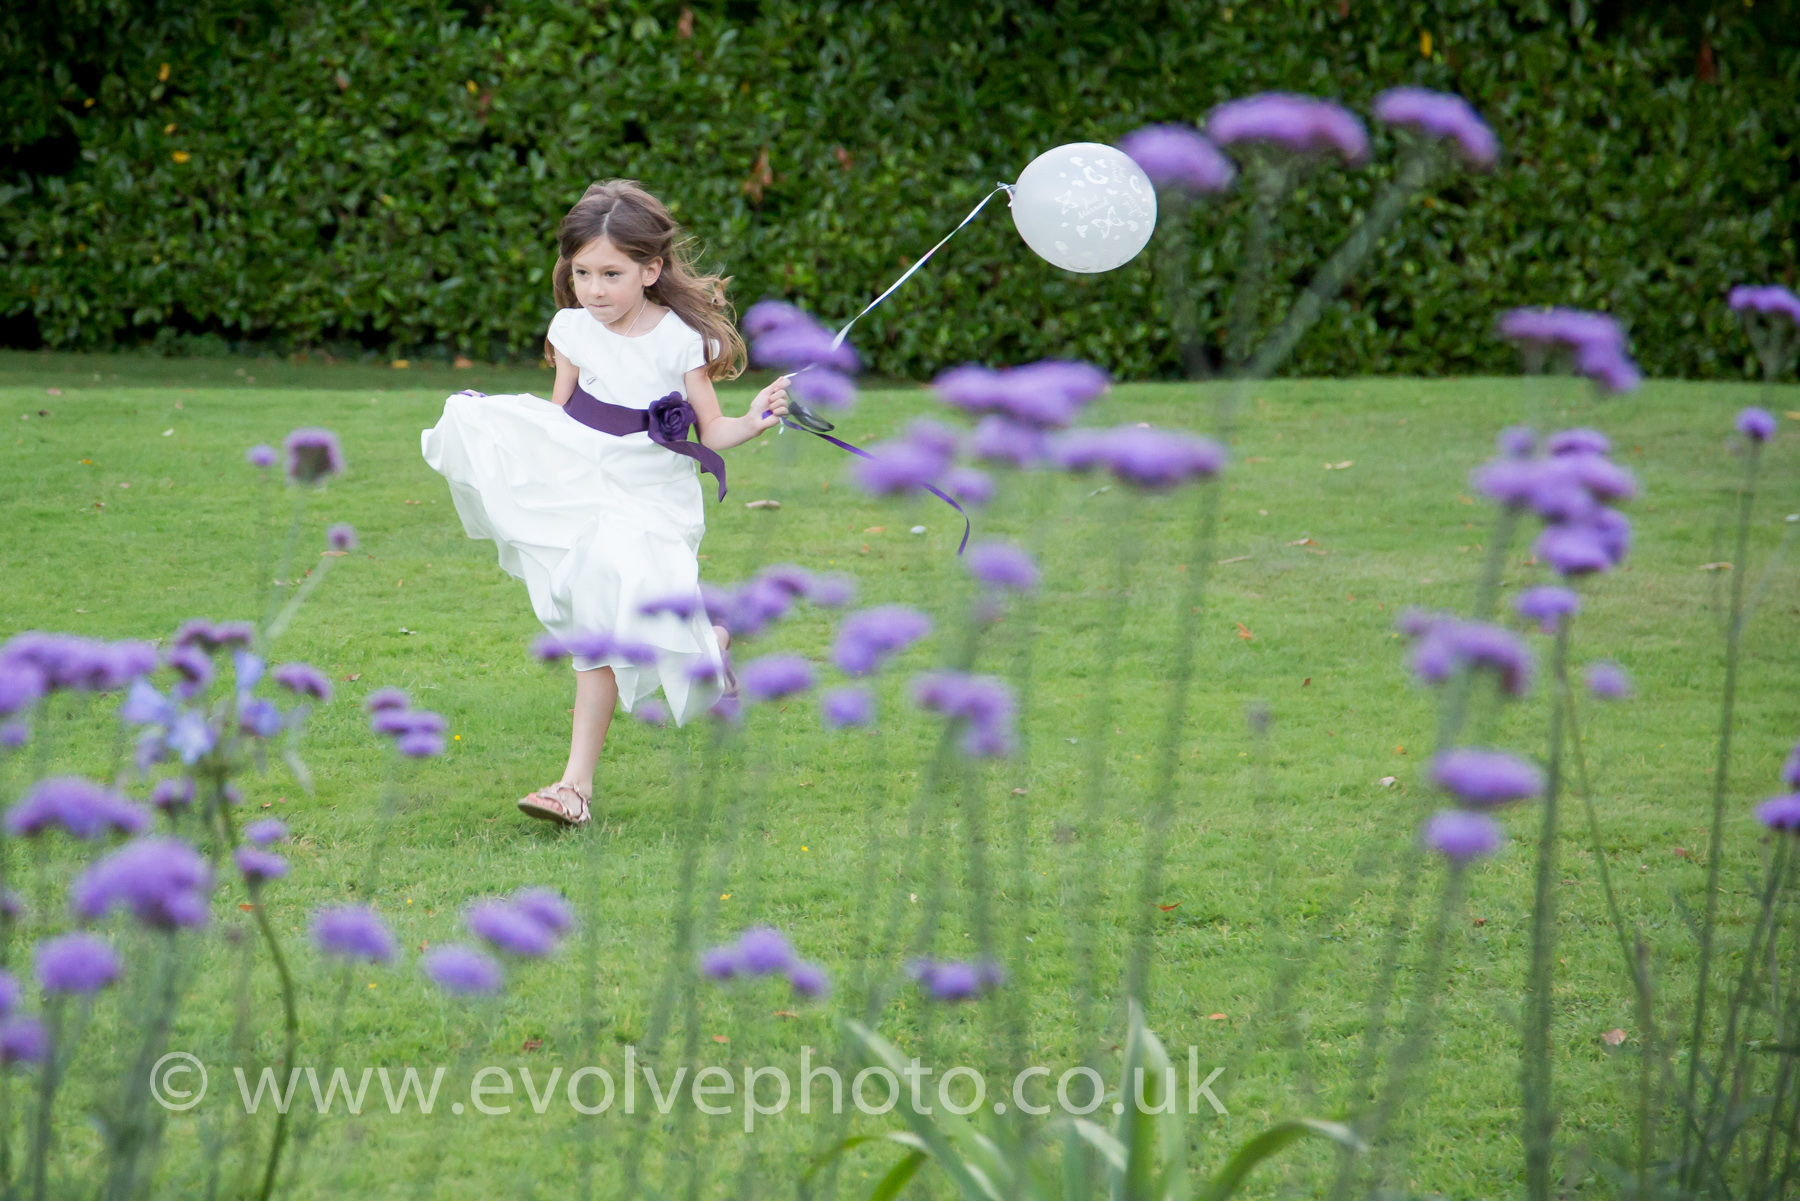 Deer park is a wedding photographers dream venue and a firm